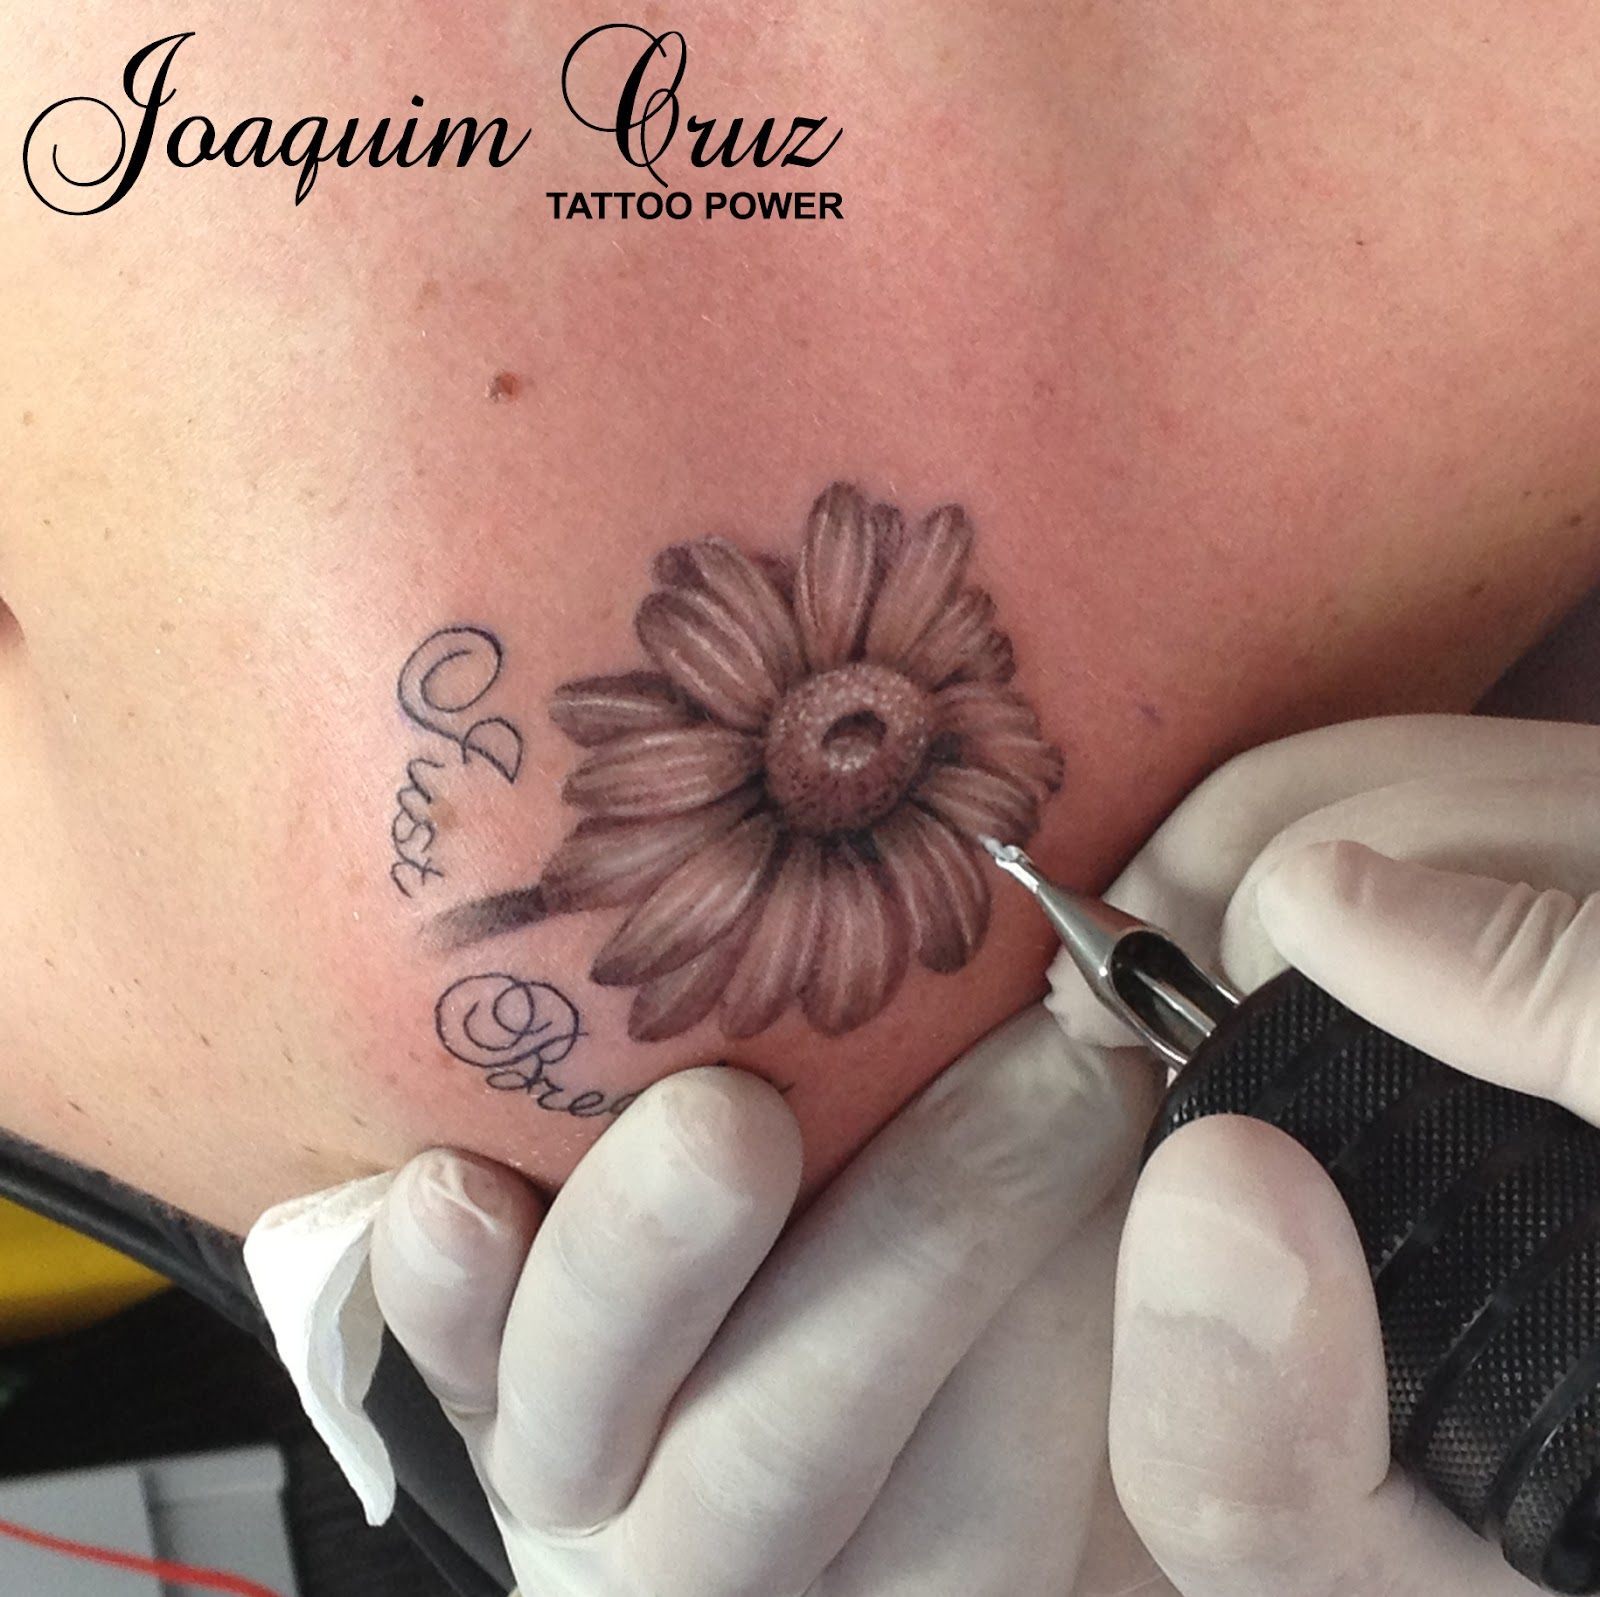 flor margarida tattoo power